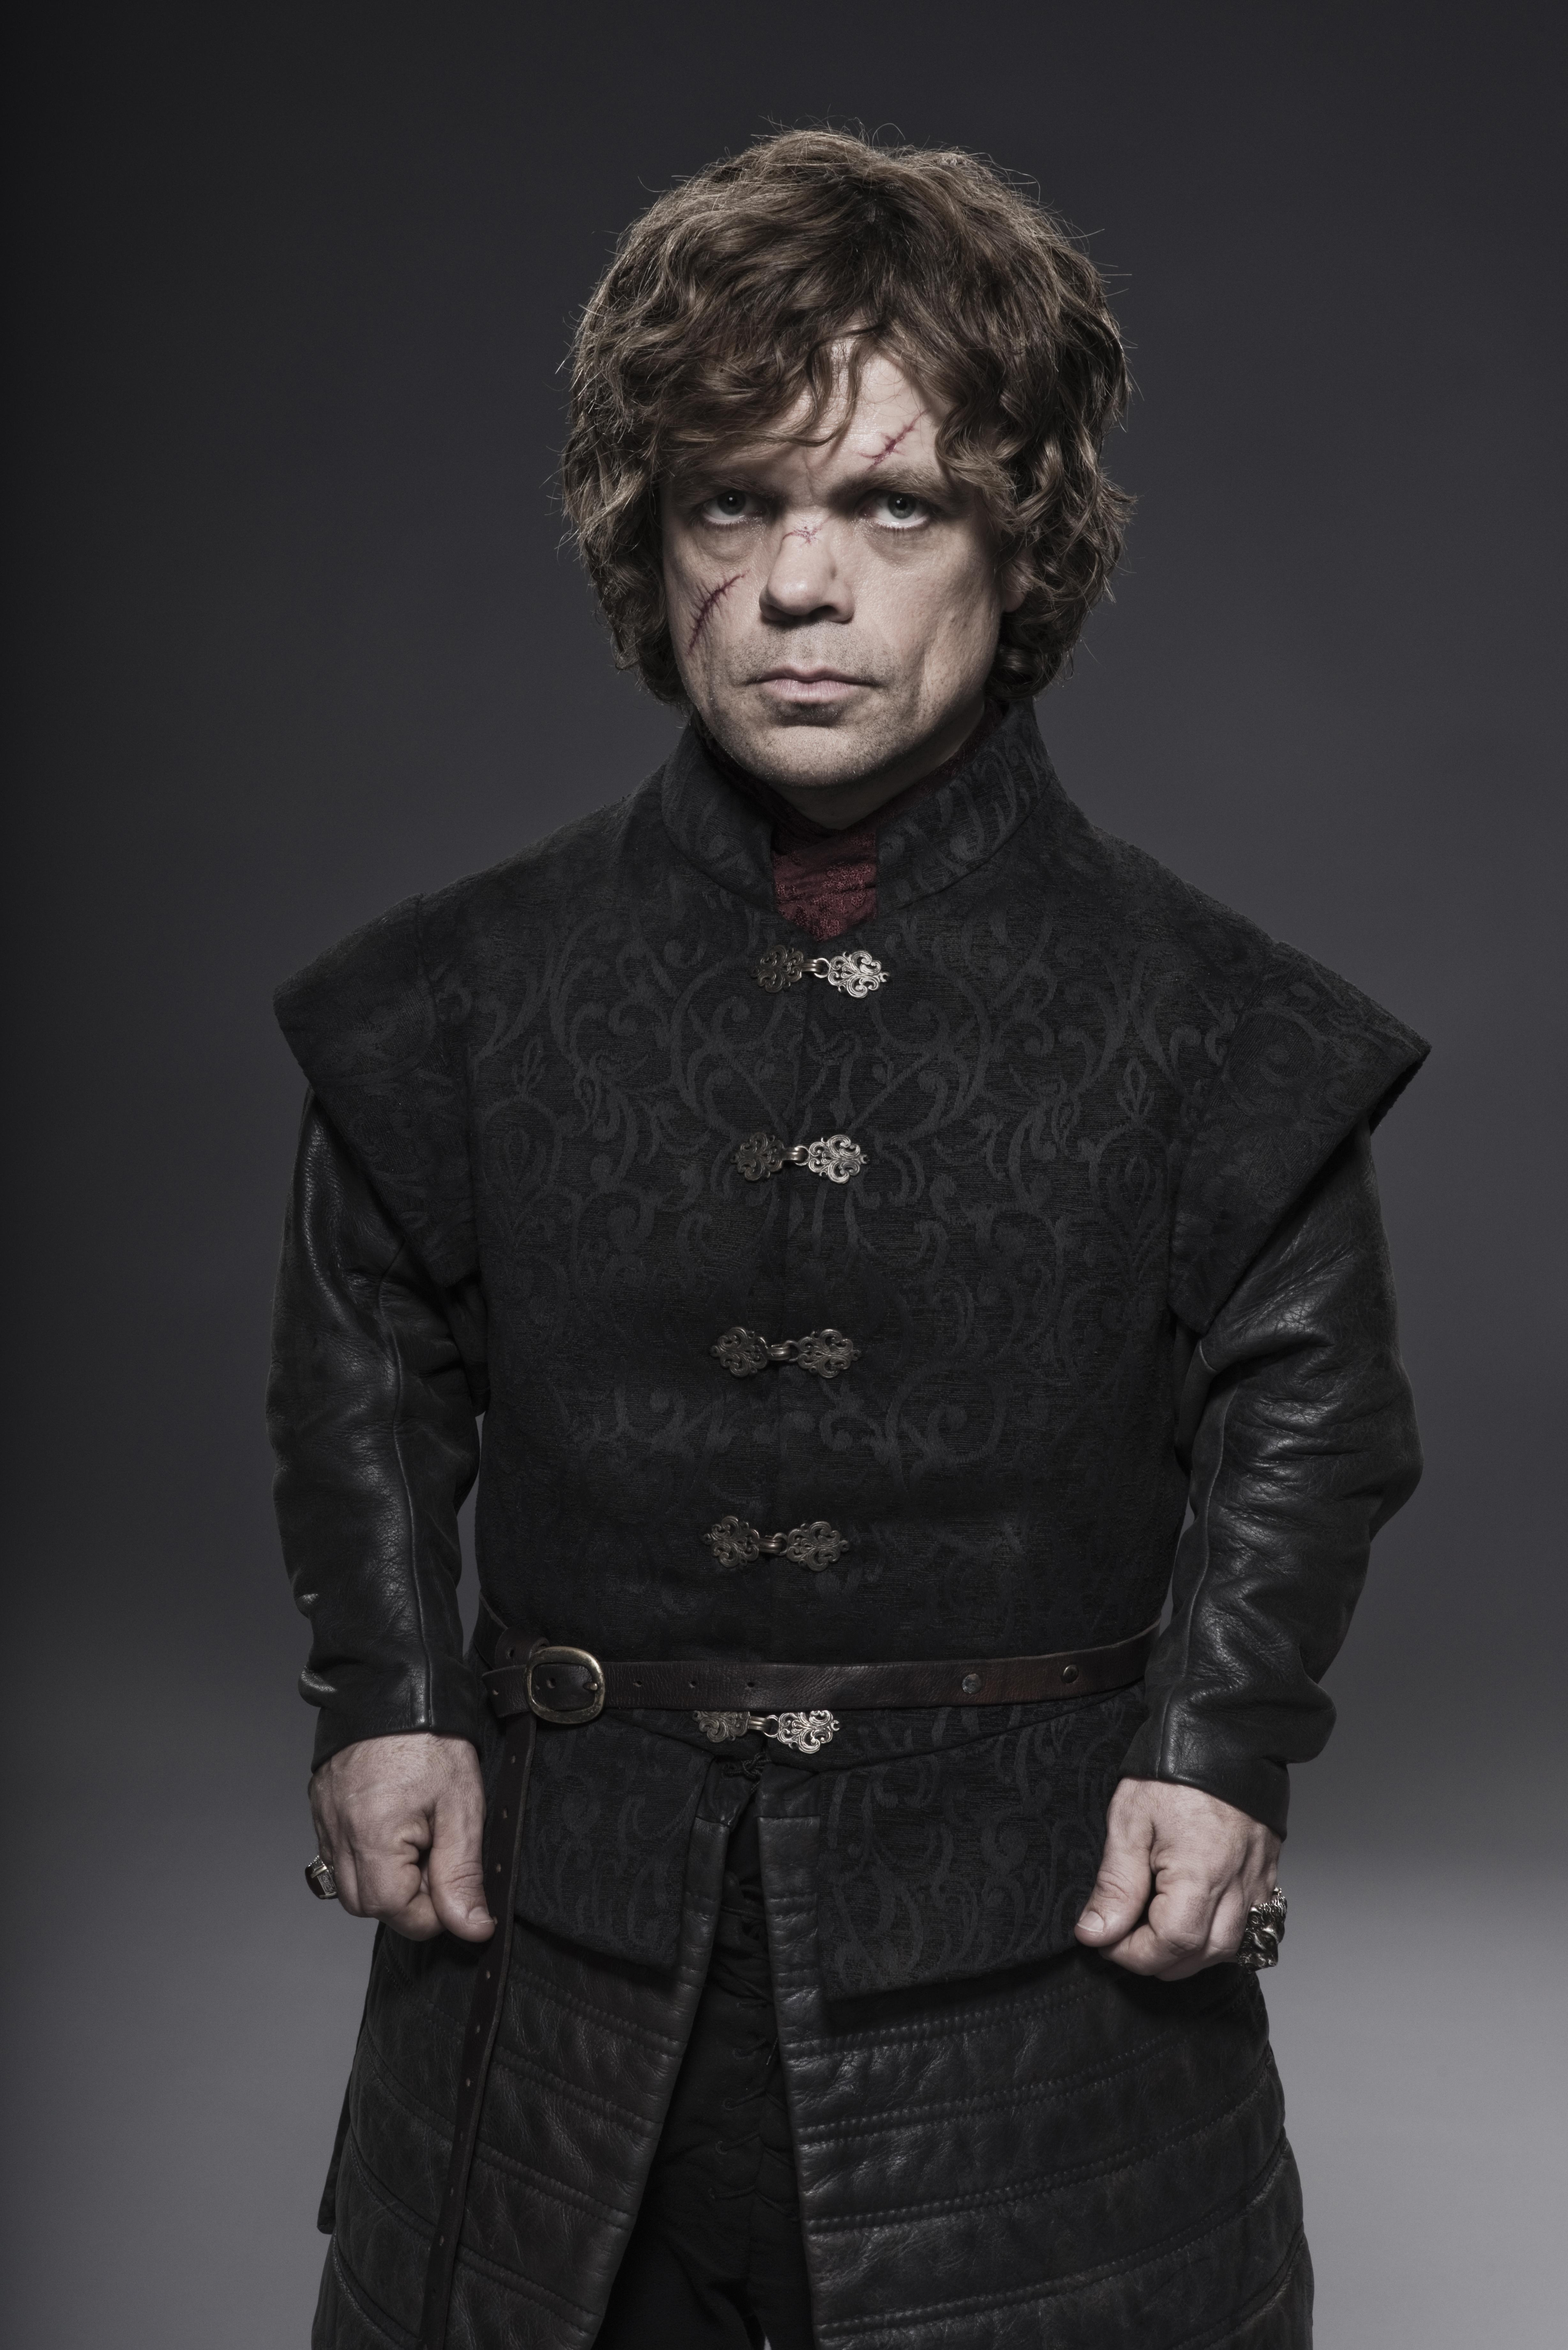 Game of Thrones - Season 4 - Cast Photo - Game of Thrones ...Game Of Thrones Cast Season 4